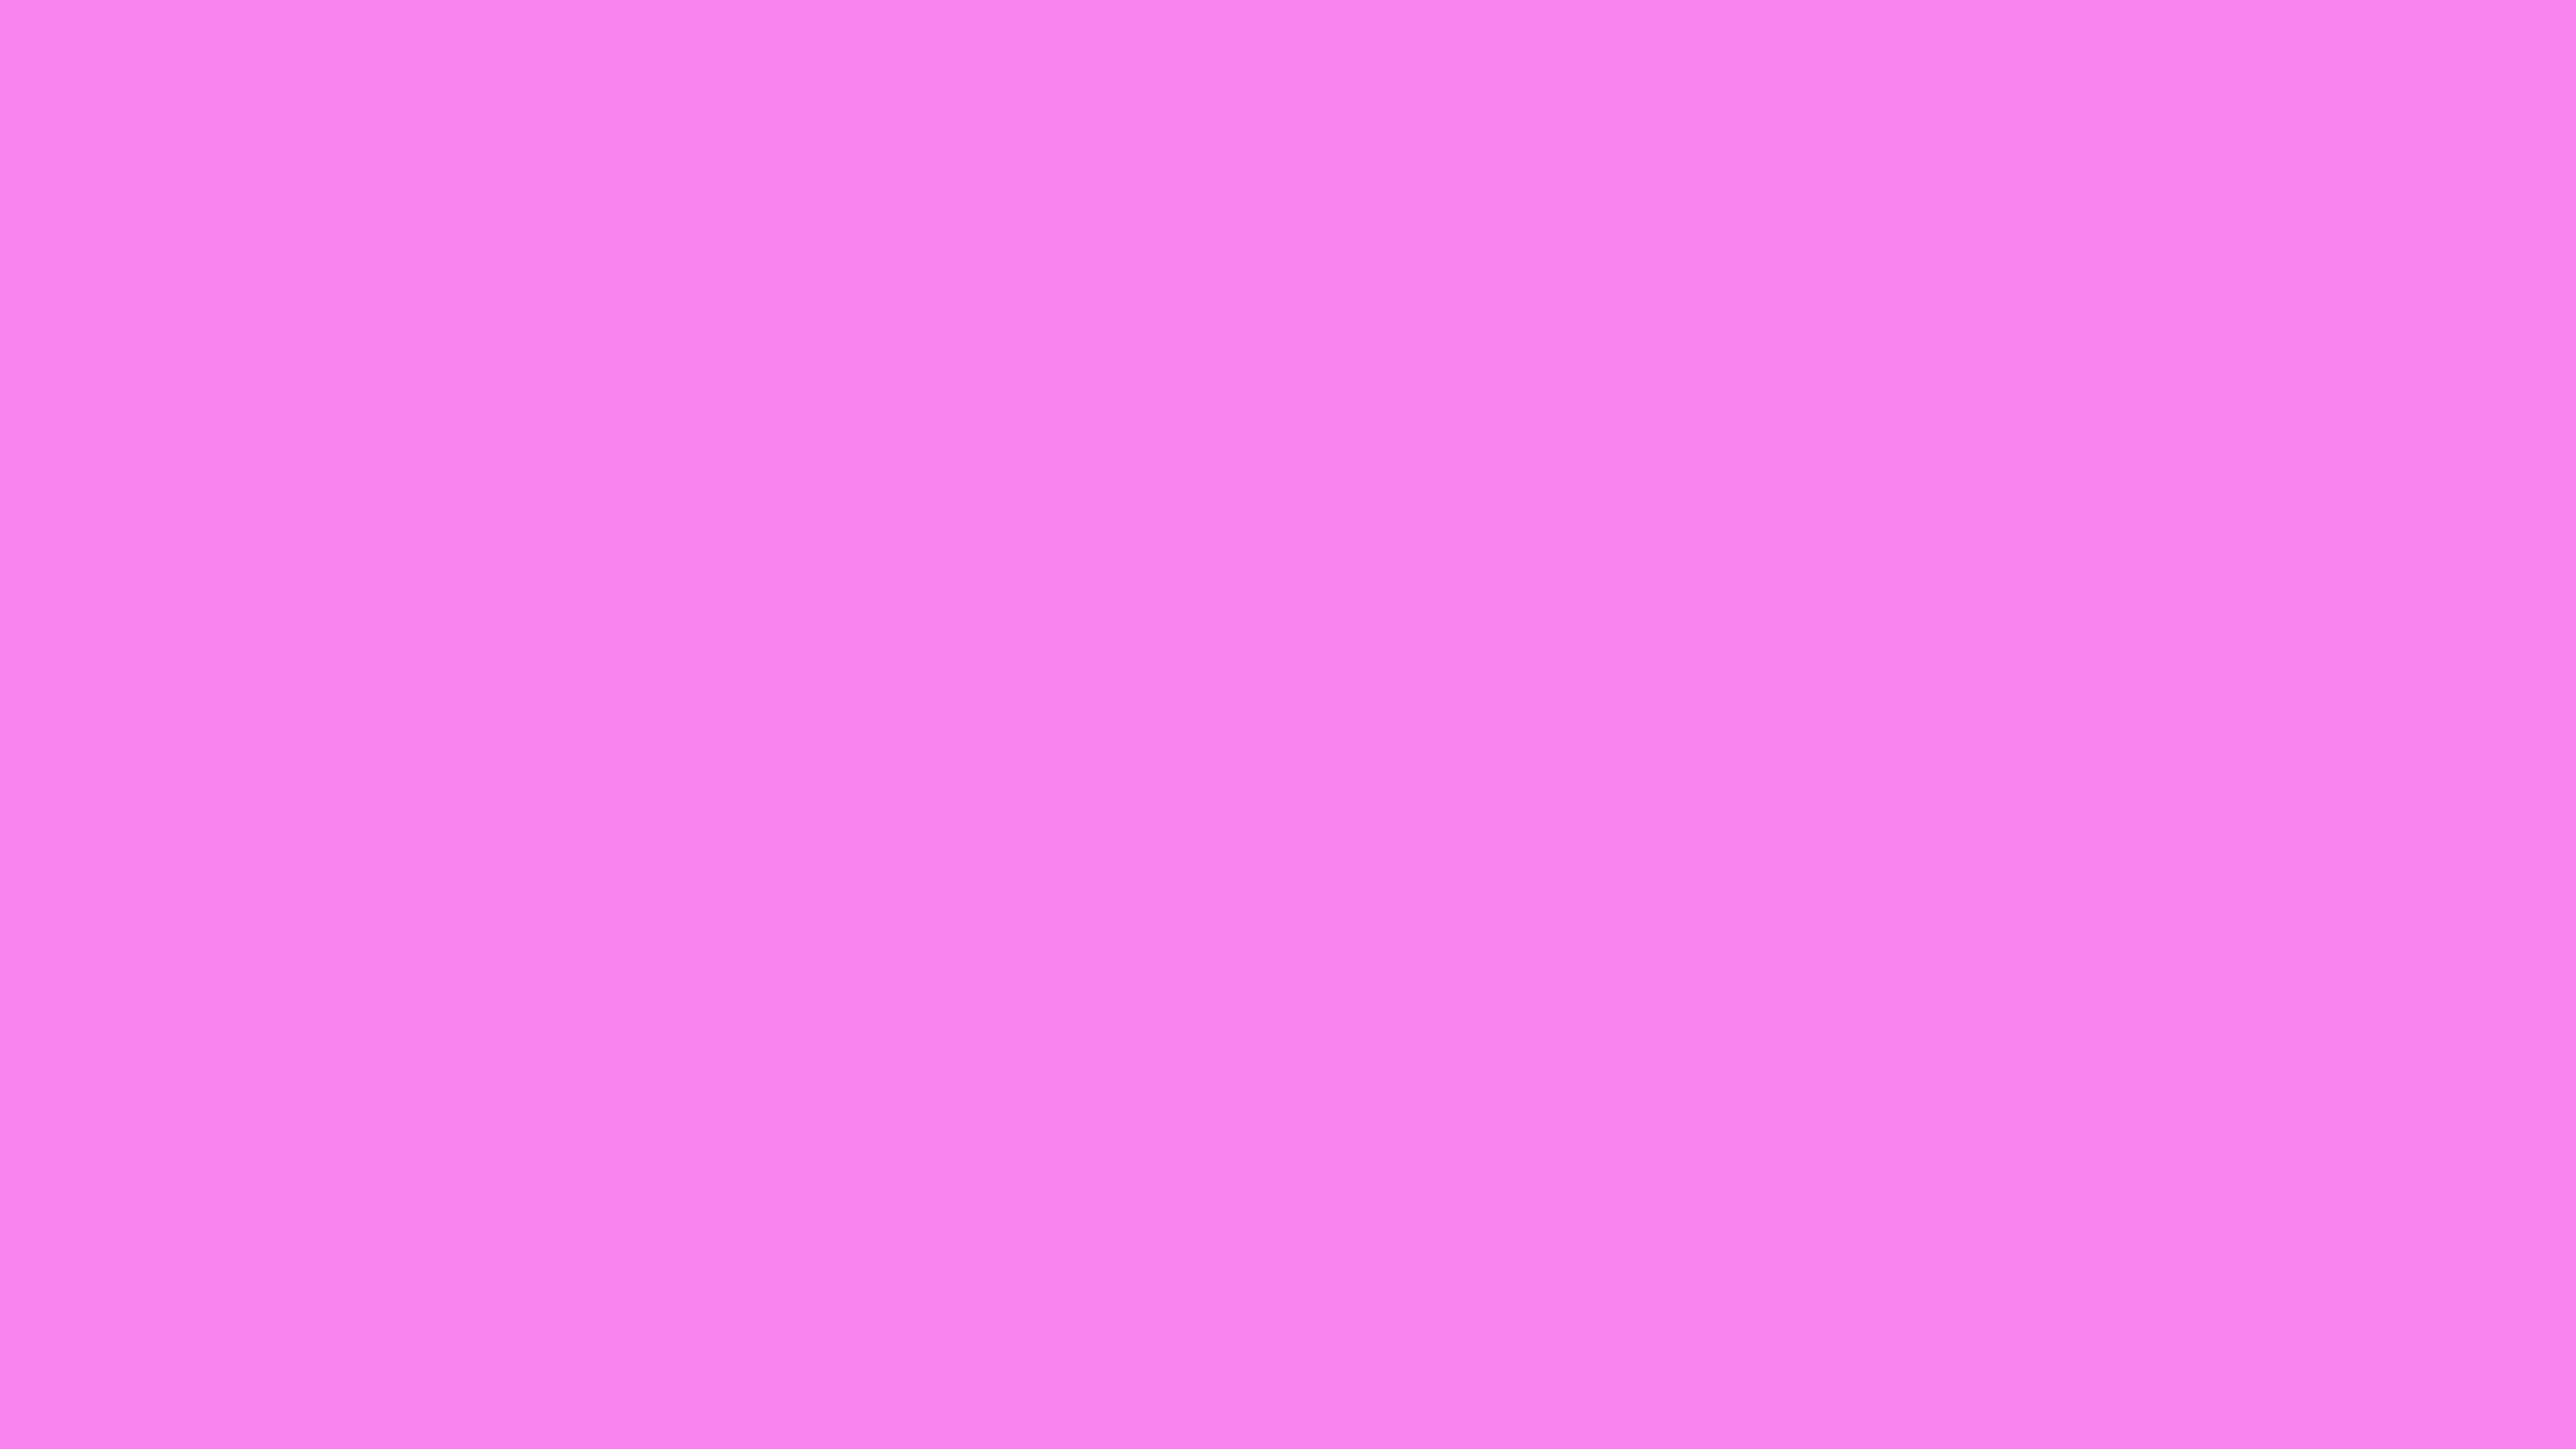 7680x4320 Light Fuchsia Pink Solid Color Background